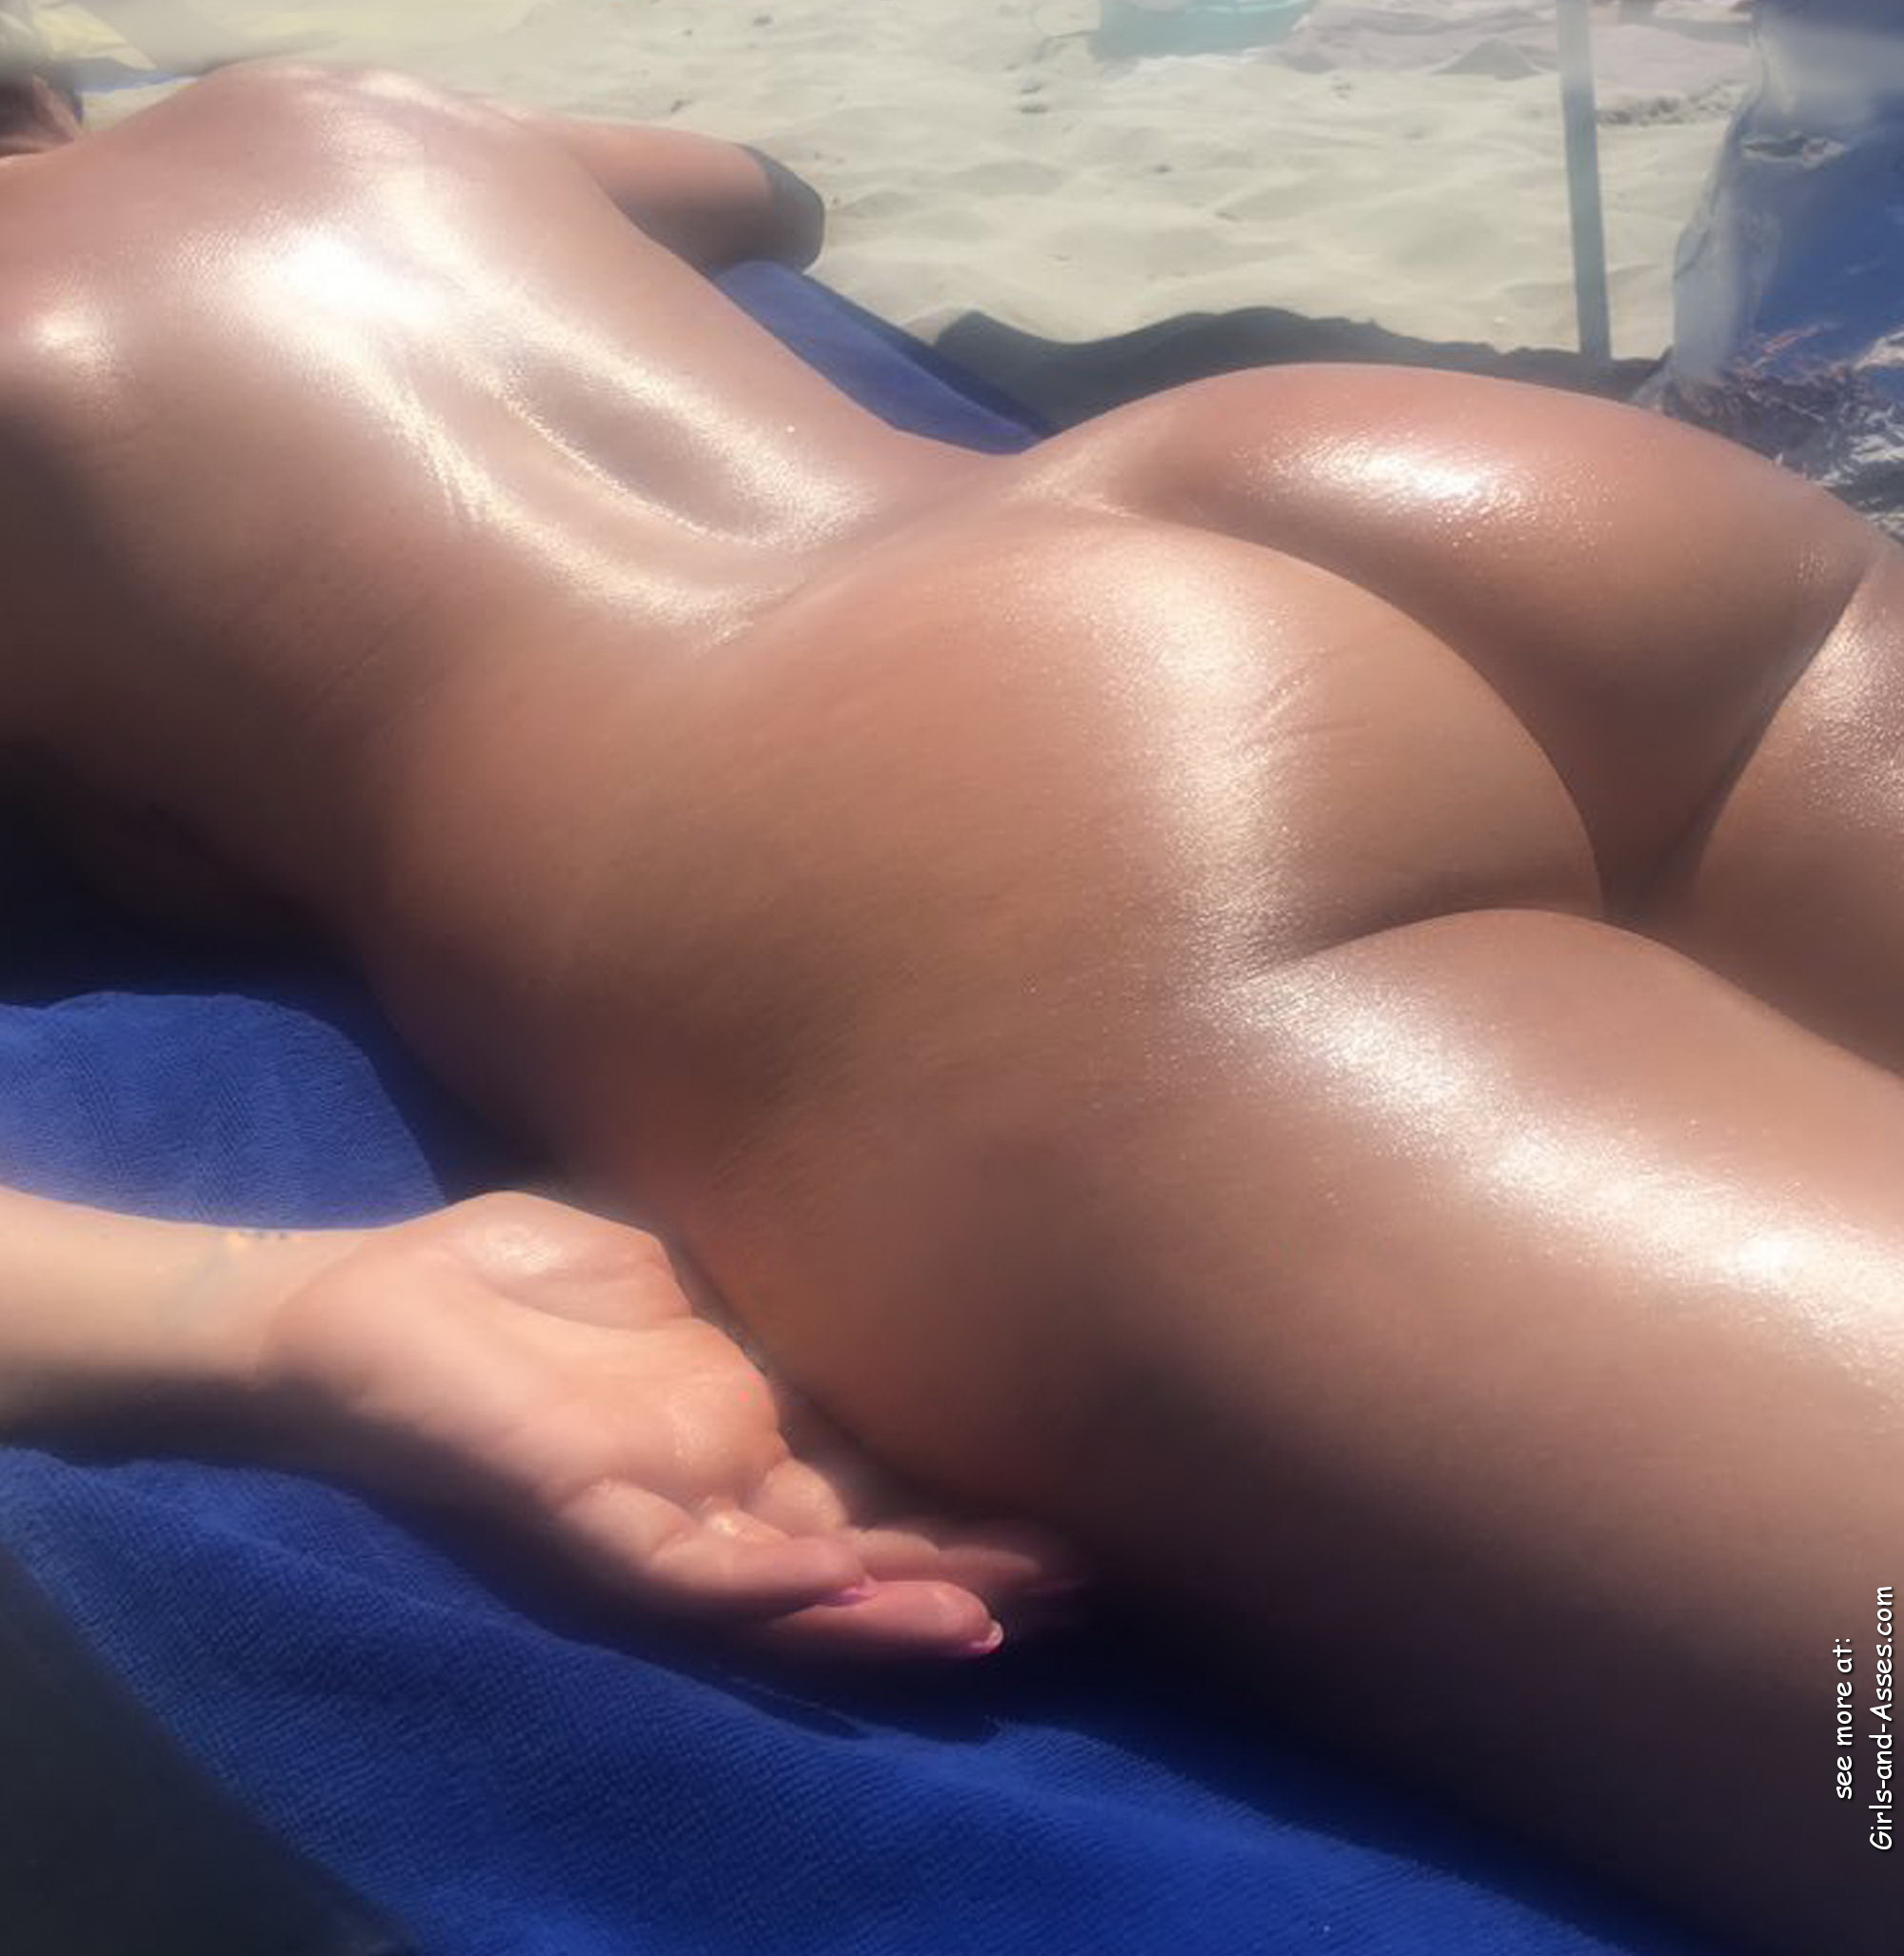 naked sunbathing tanning on the beach pic 01343